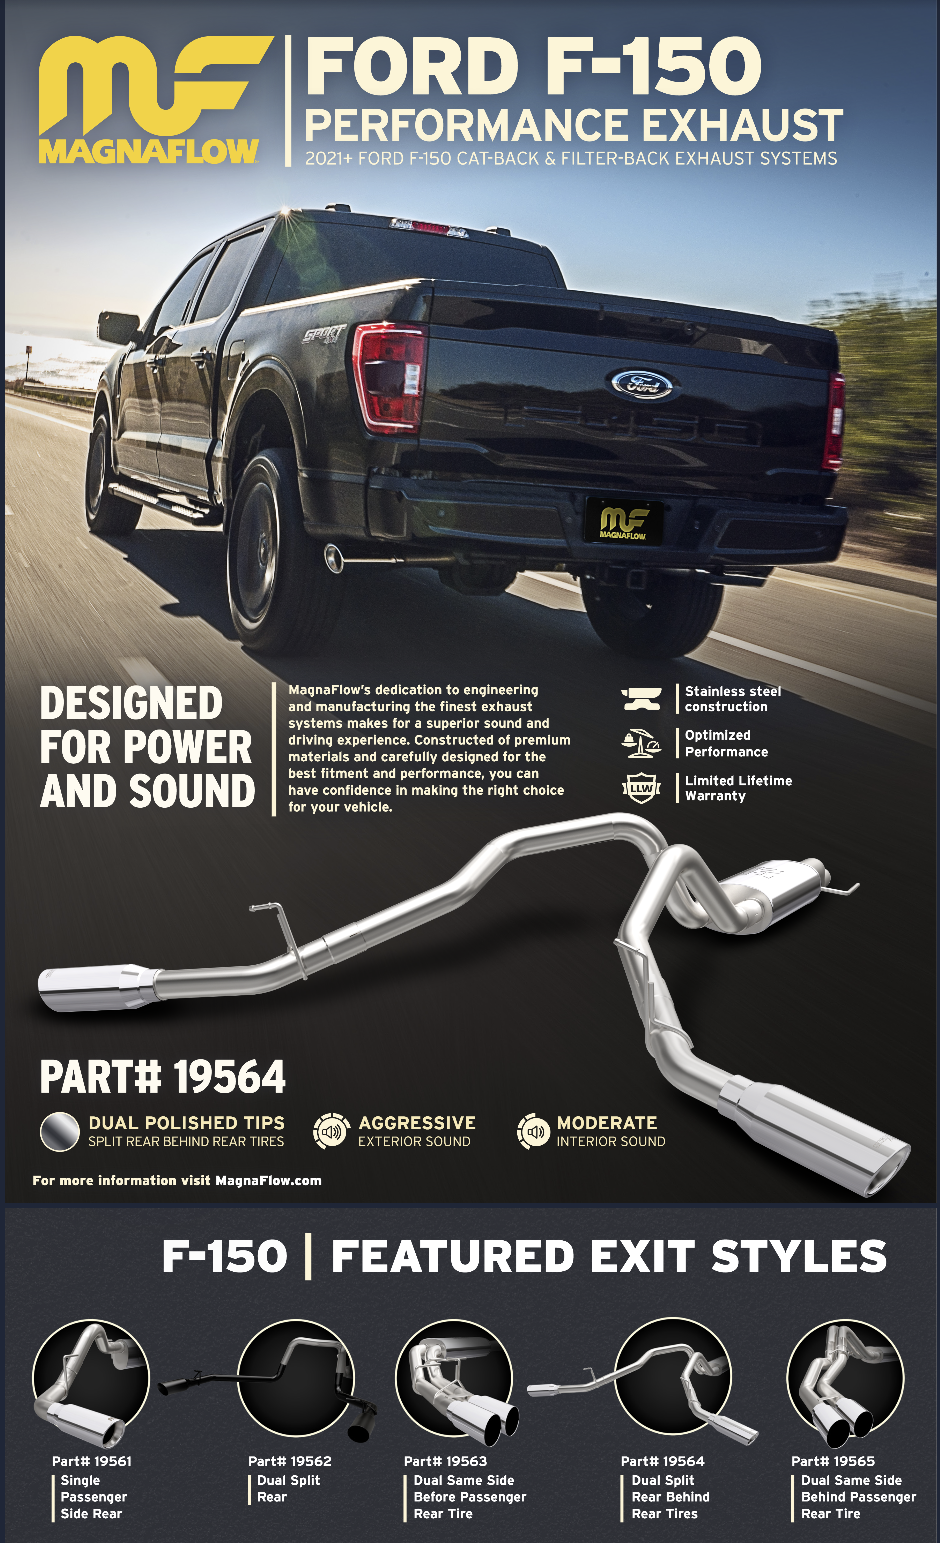 D-FIT Muffler Replacement Kit PDF for download